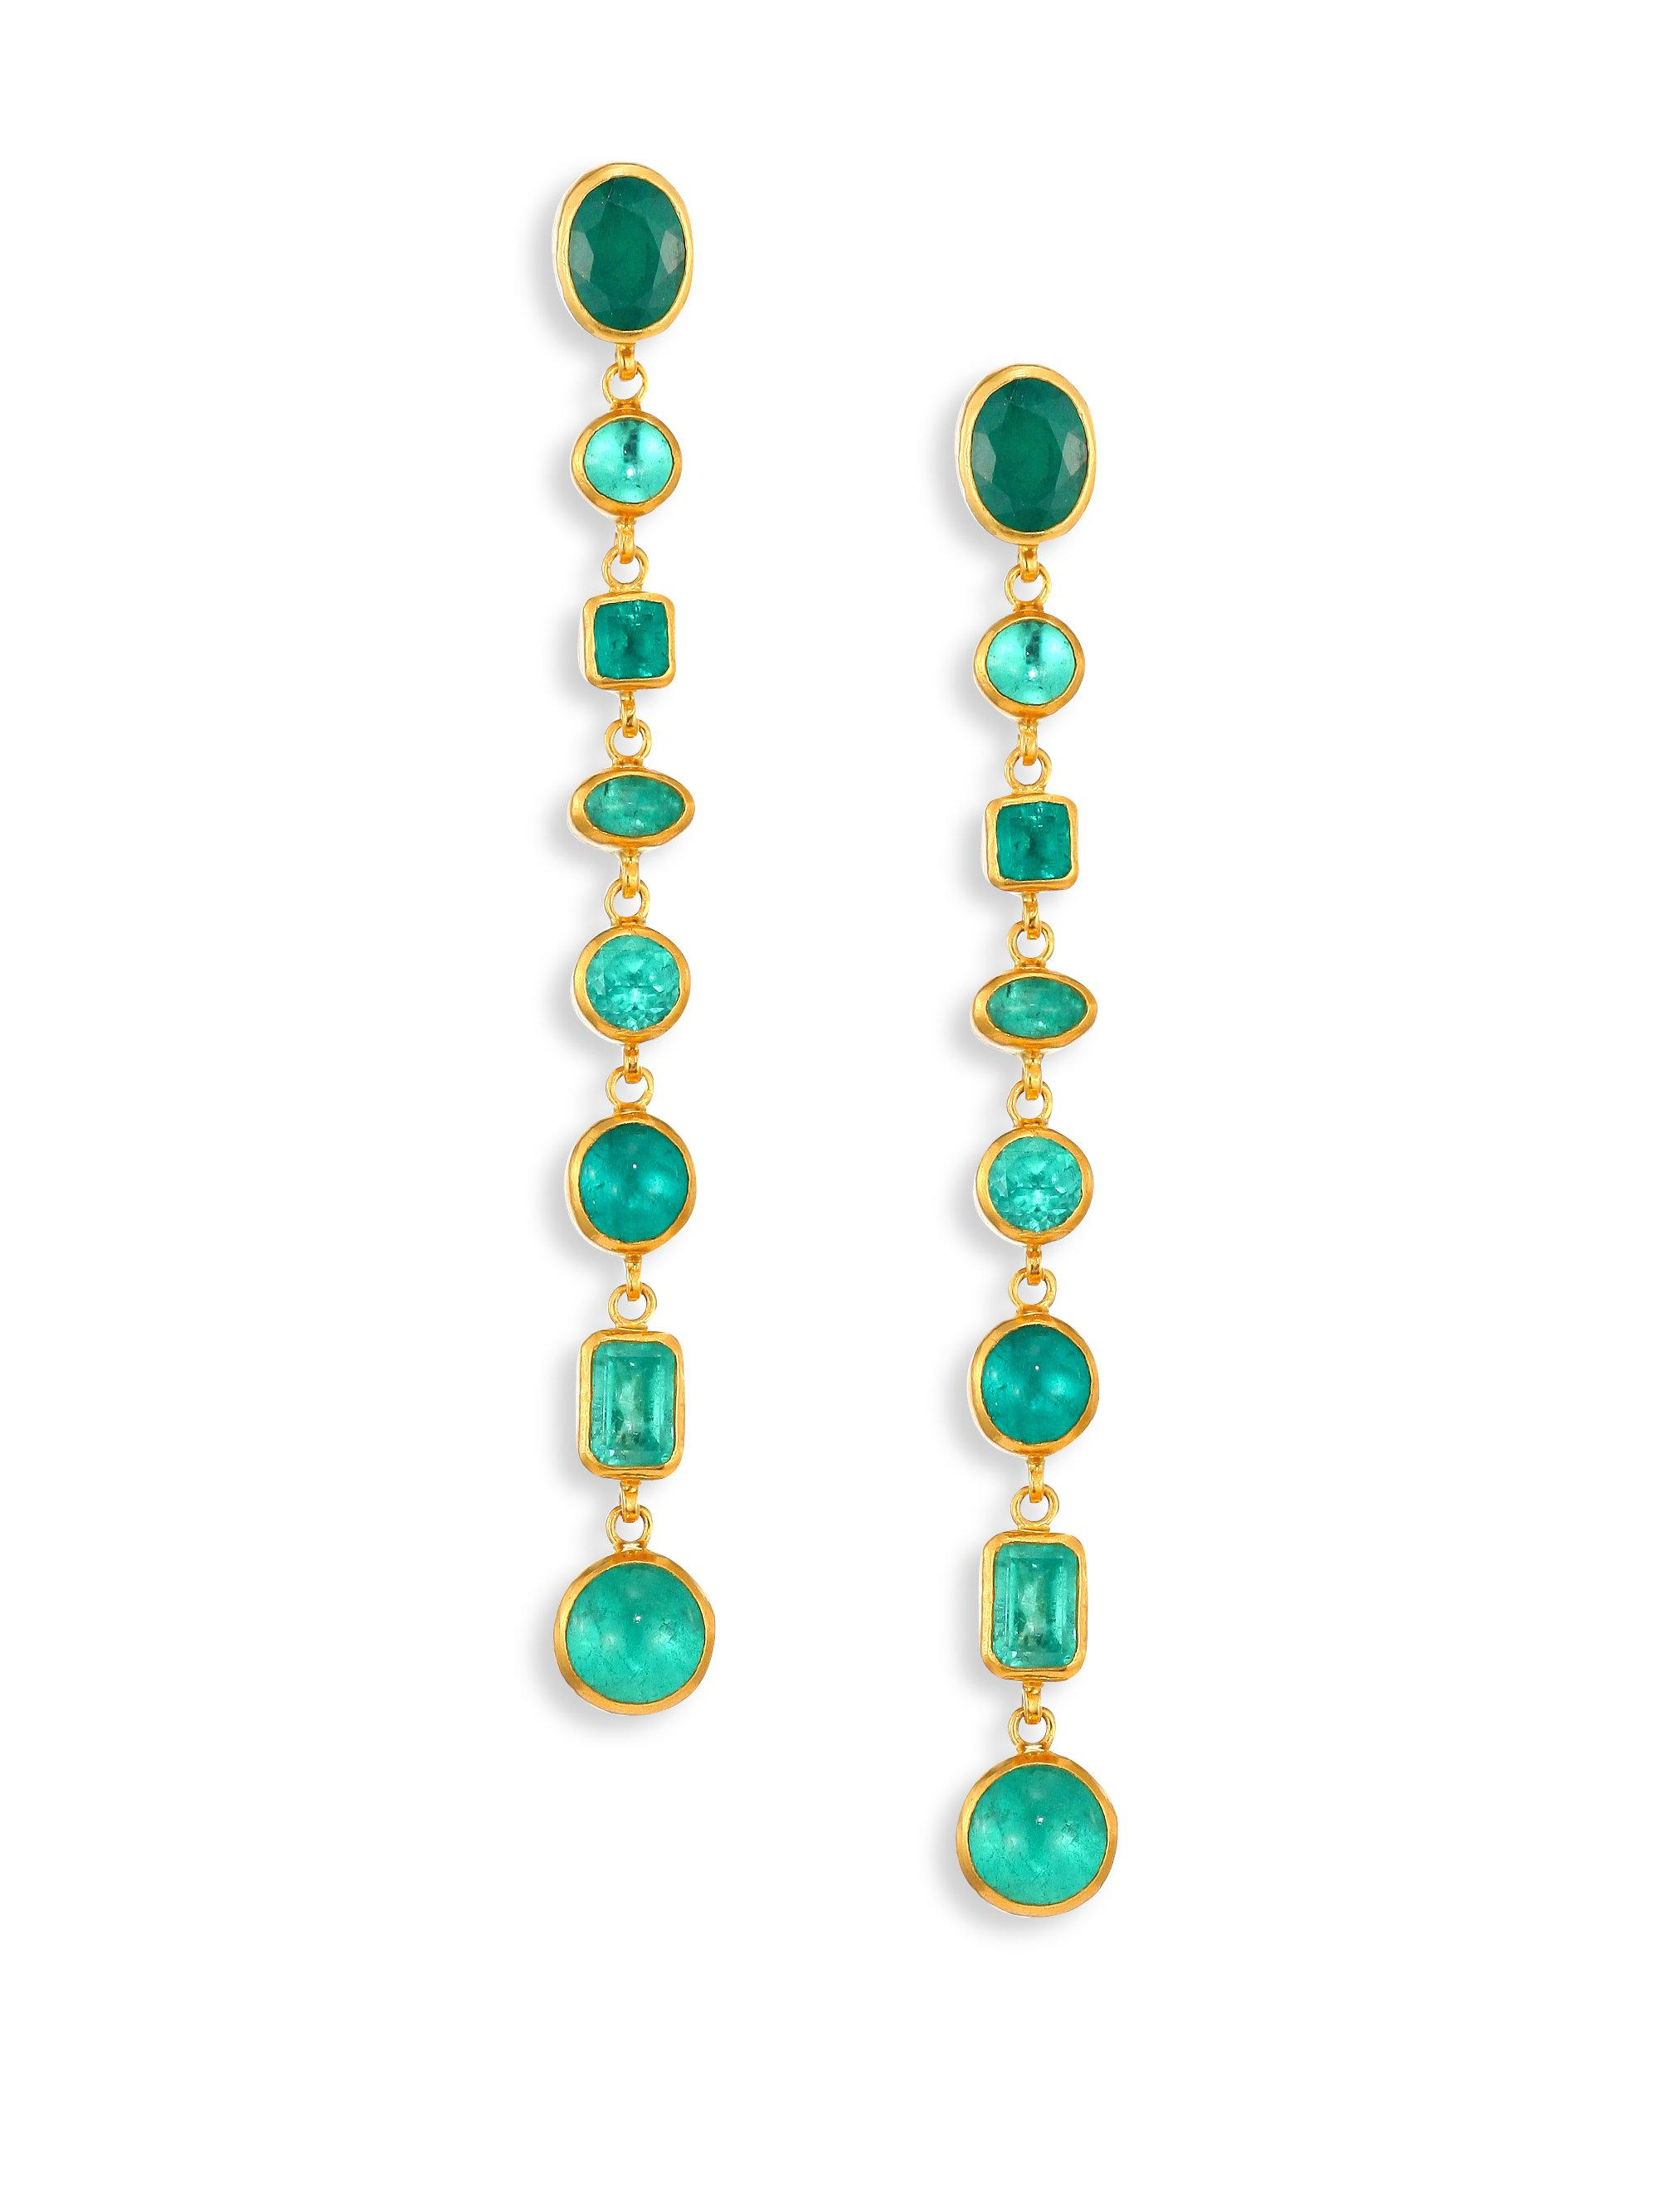 Gurhan Limited Edition 22k Elements Hue Double-Chain Earrings with Emerald pIGWUX